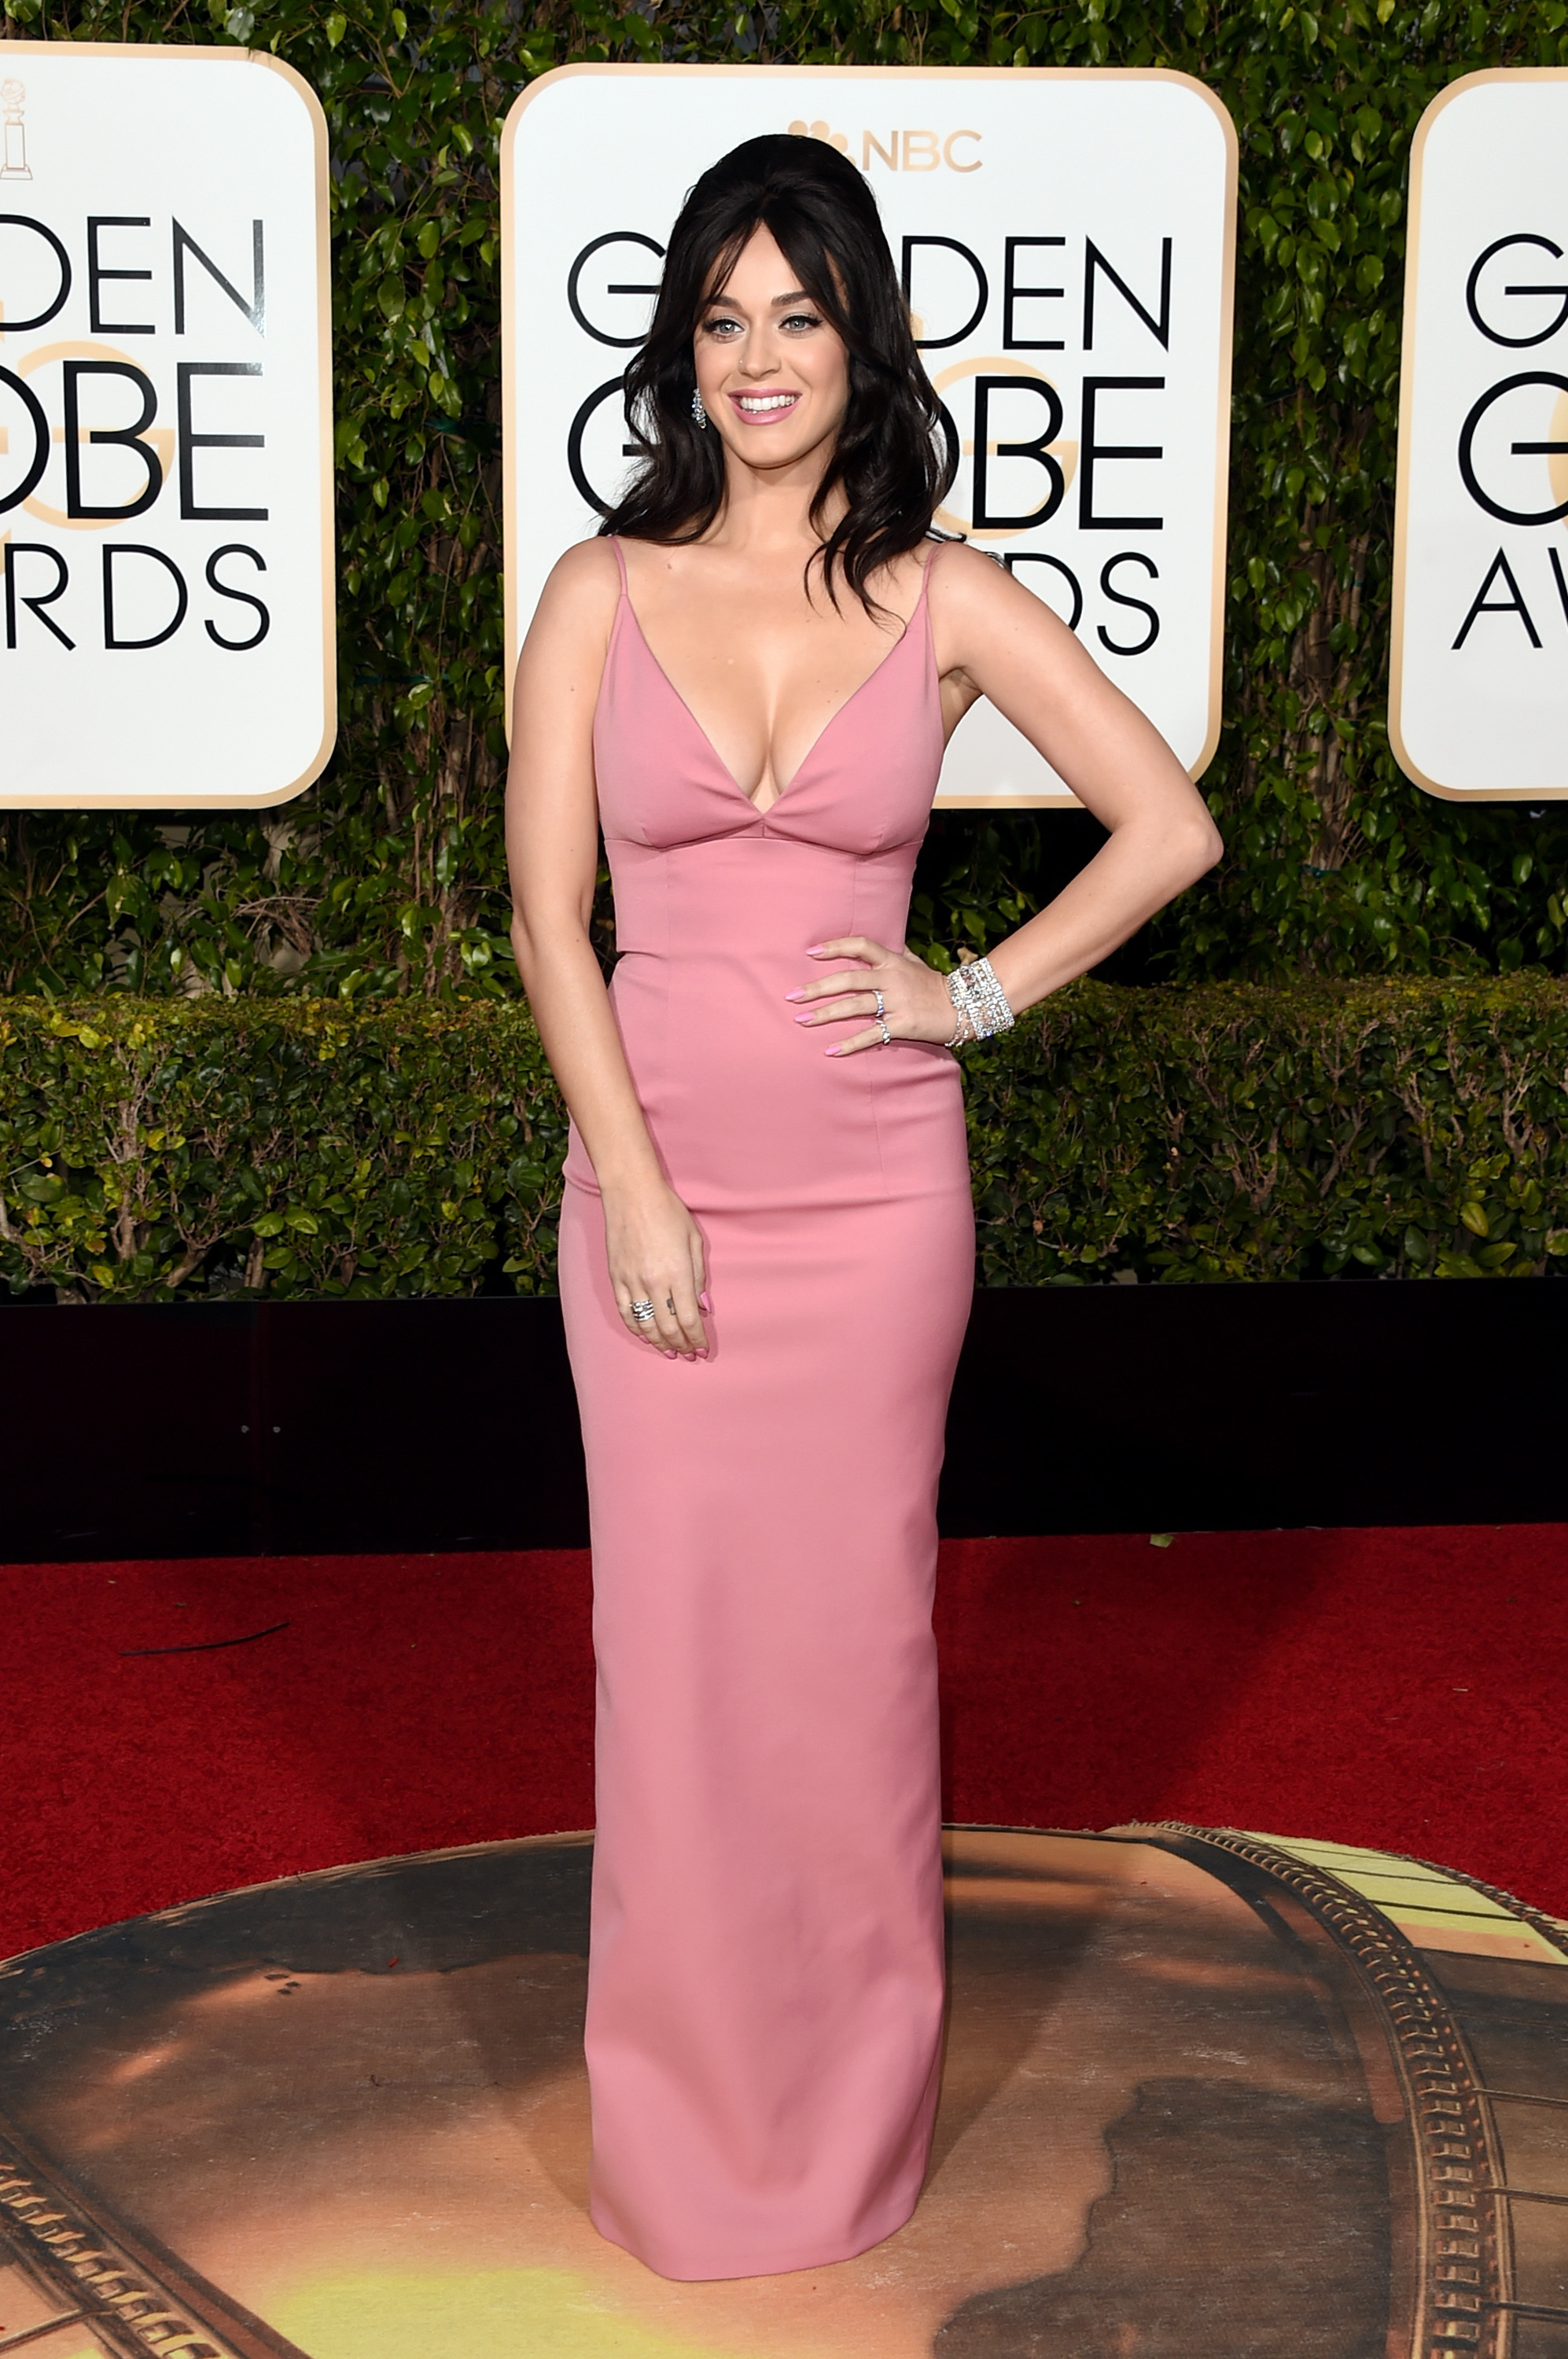 Katy Perry arrives to the 73rd Annual Golden Globe Awards on Jan. 10, 2016 in Beverly Hills.